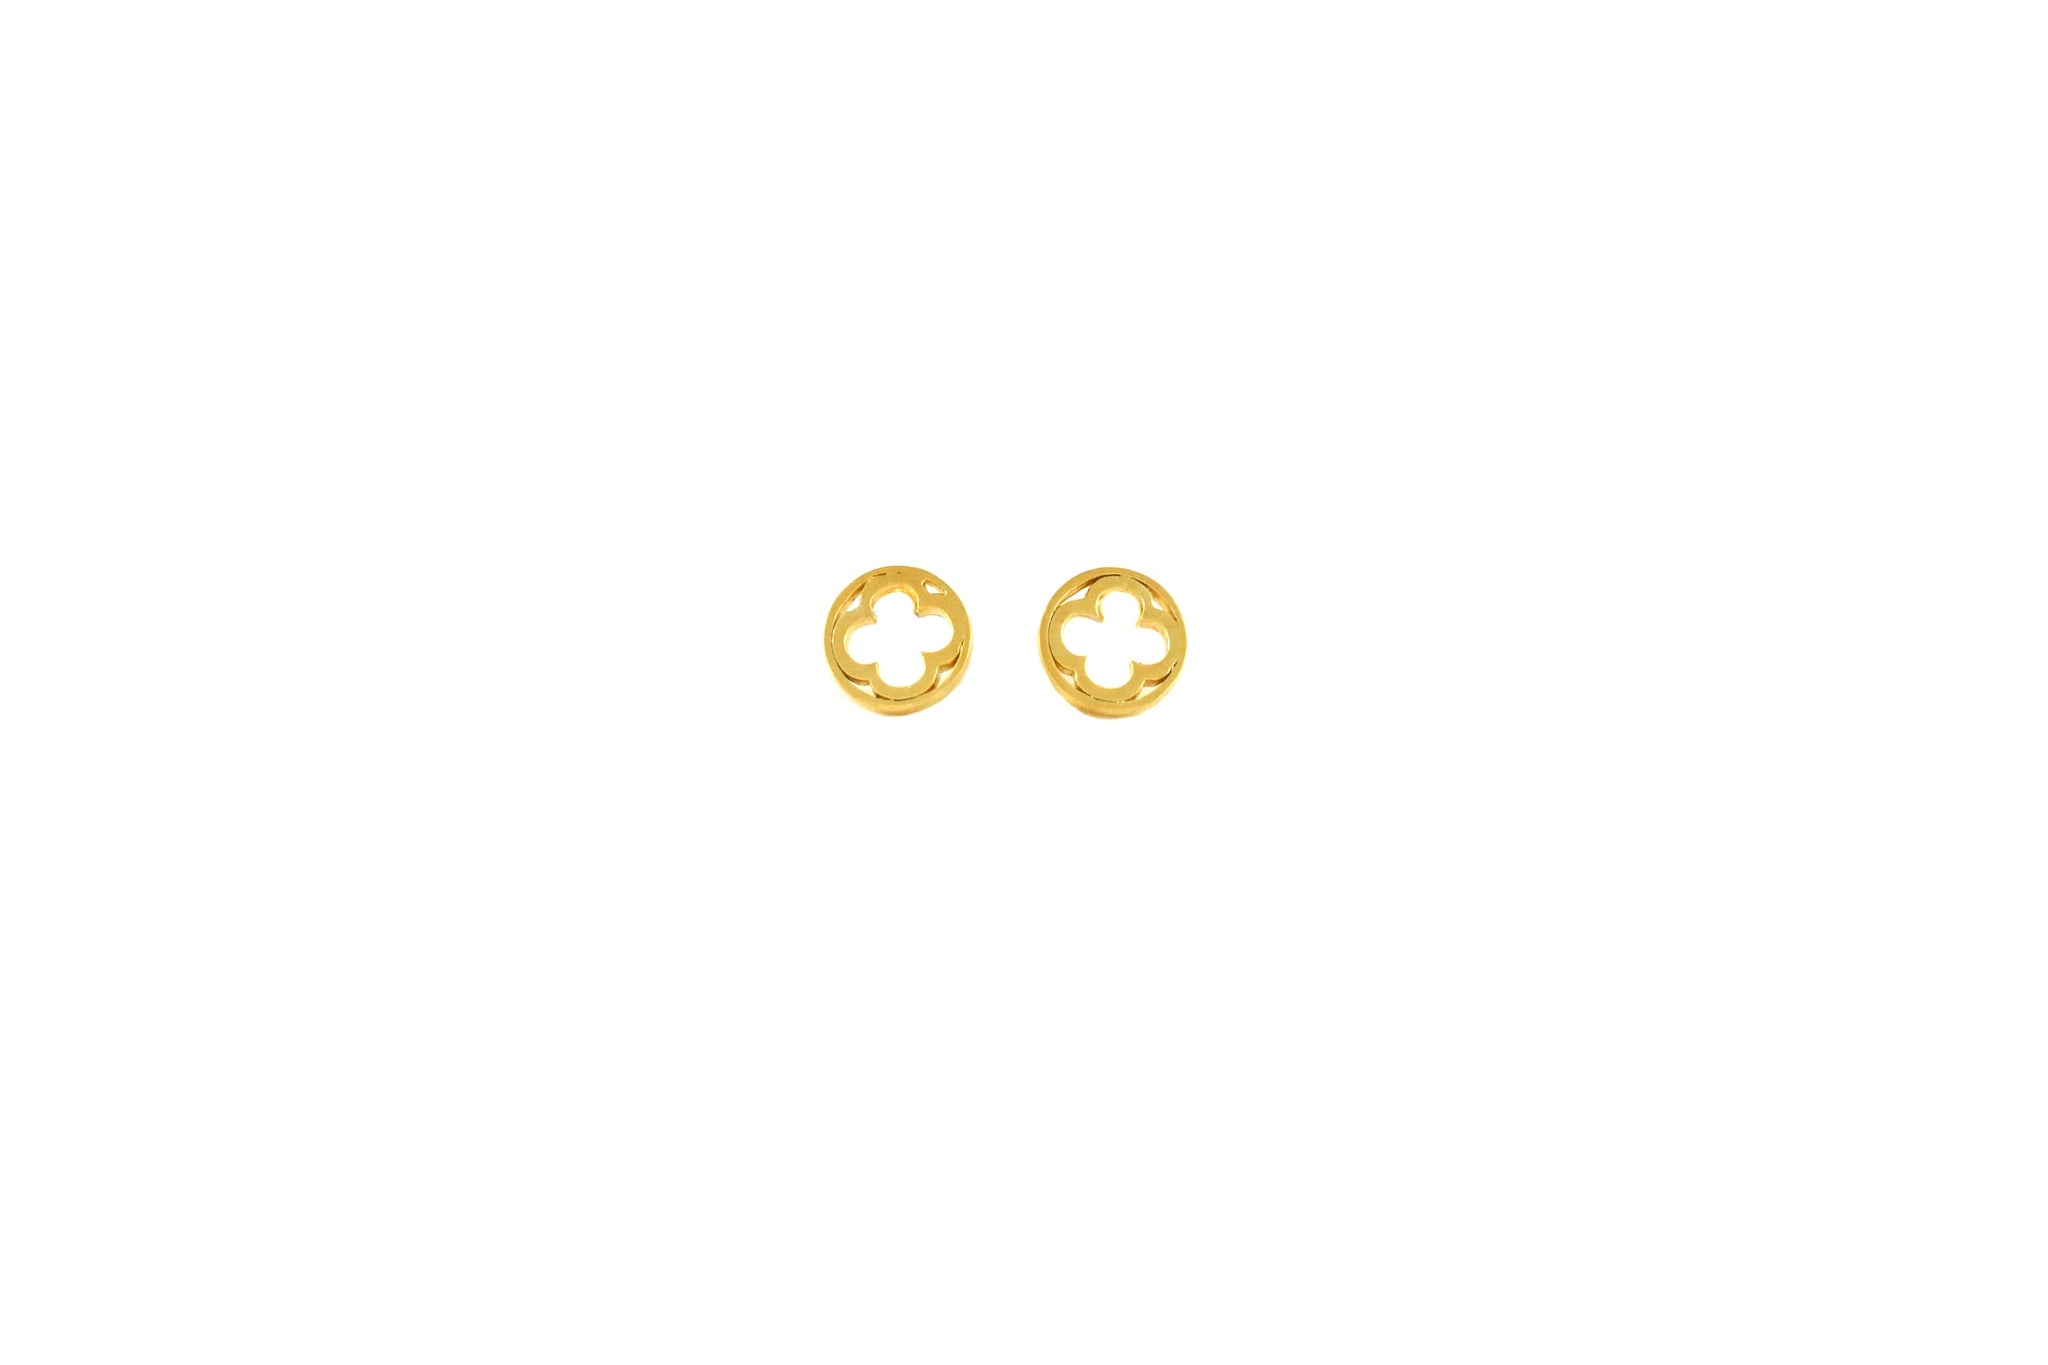 Gable Earrings in Gold